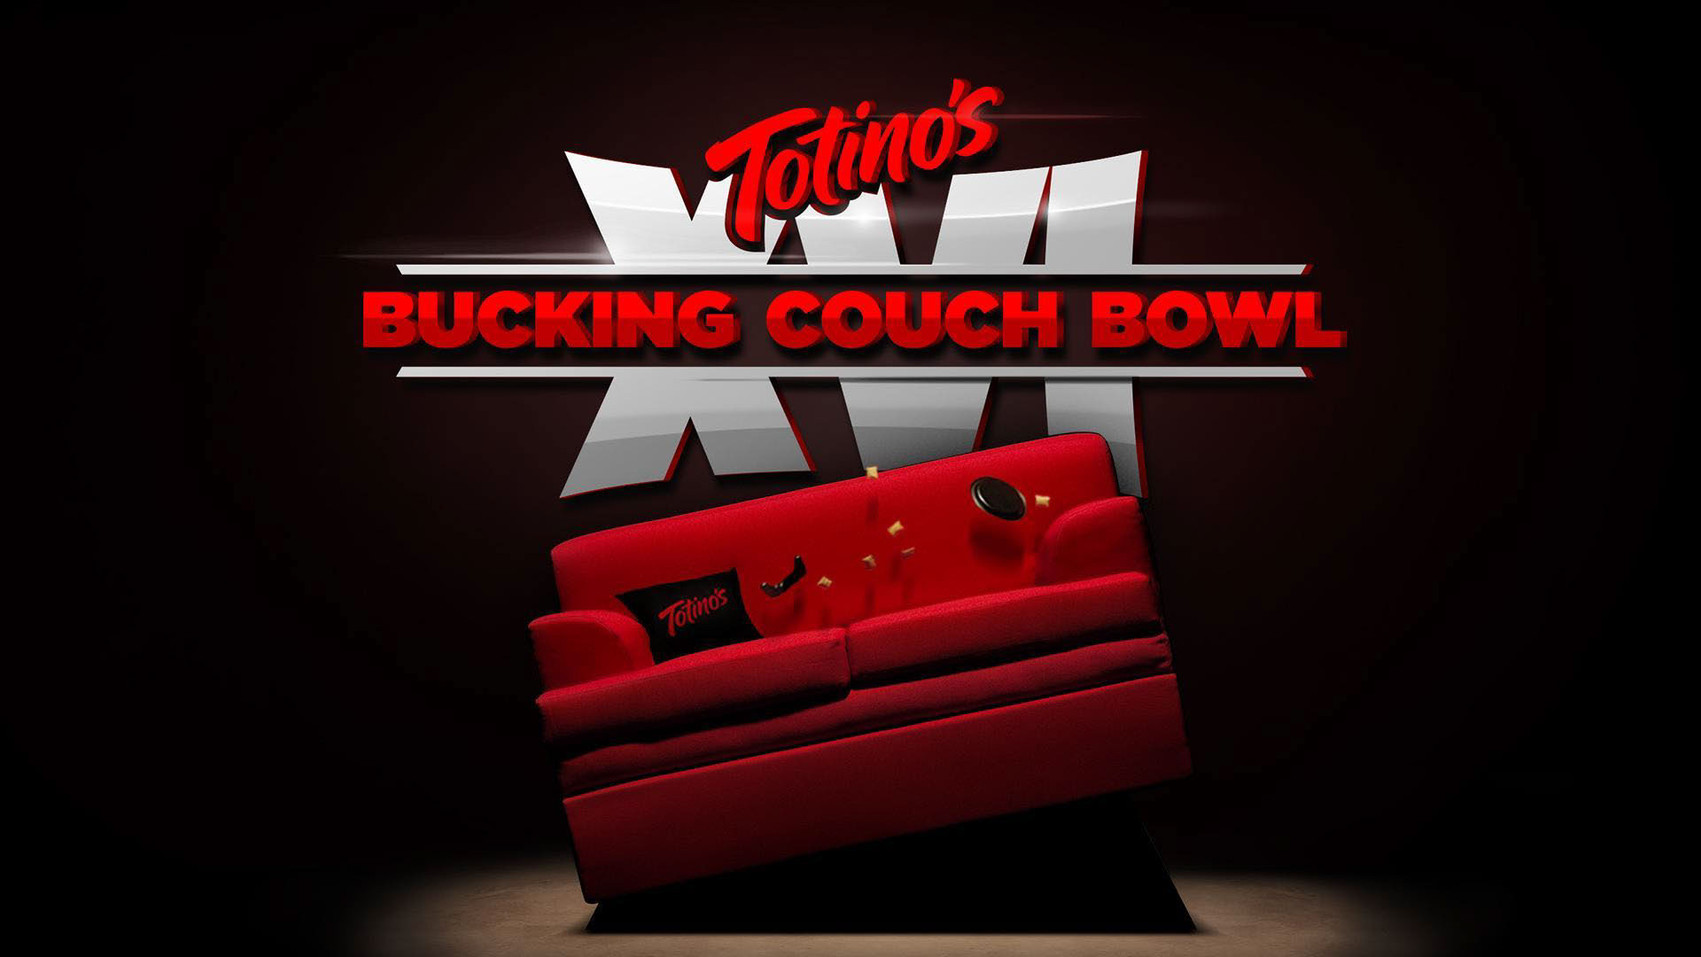 Totino's - Bucking Couch Bowl_Page_05.jpg